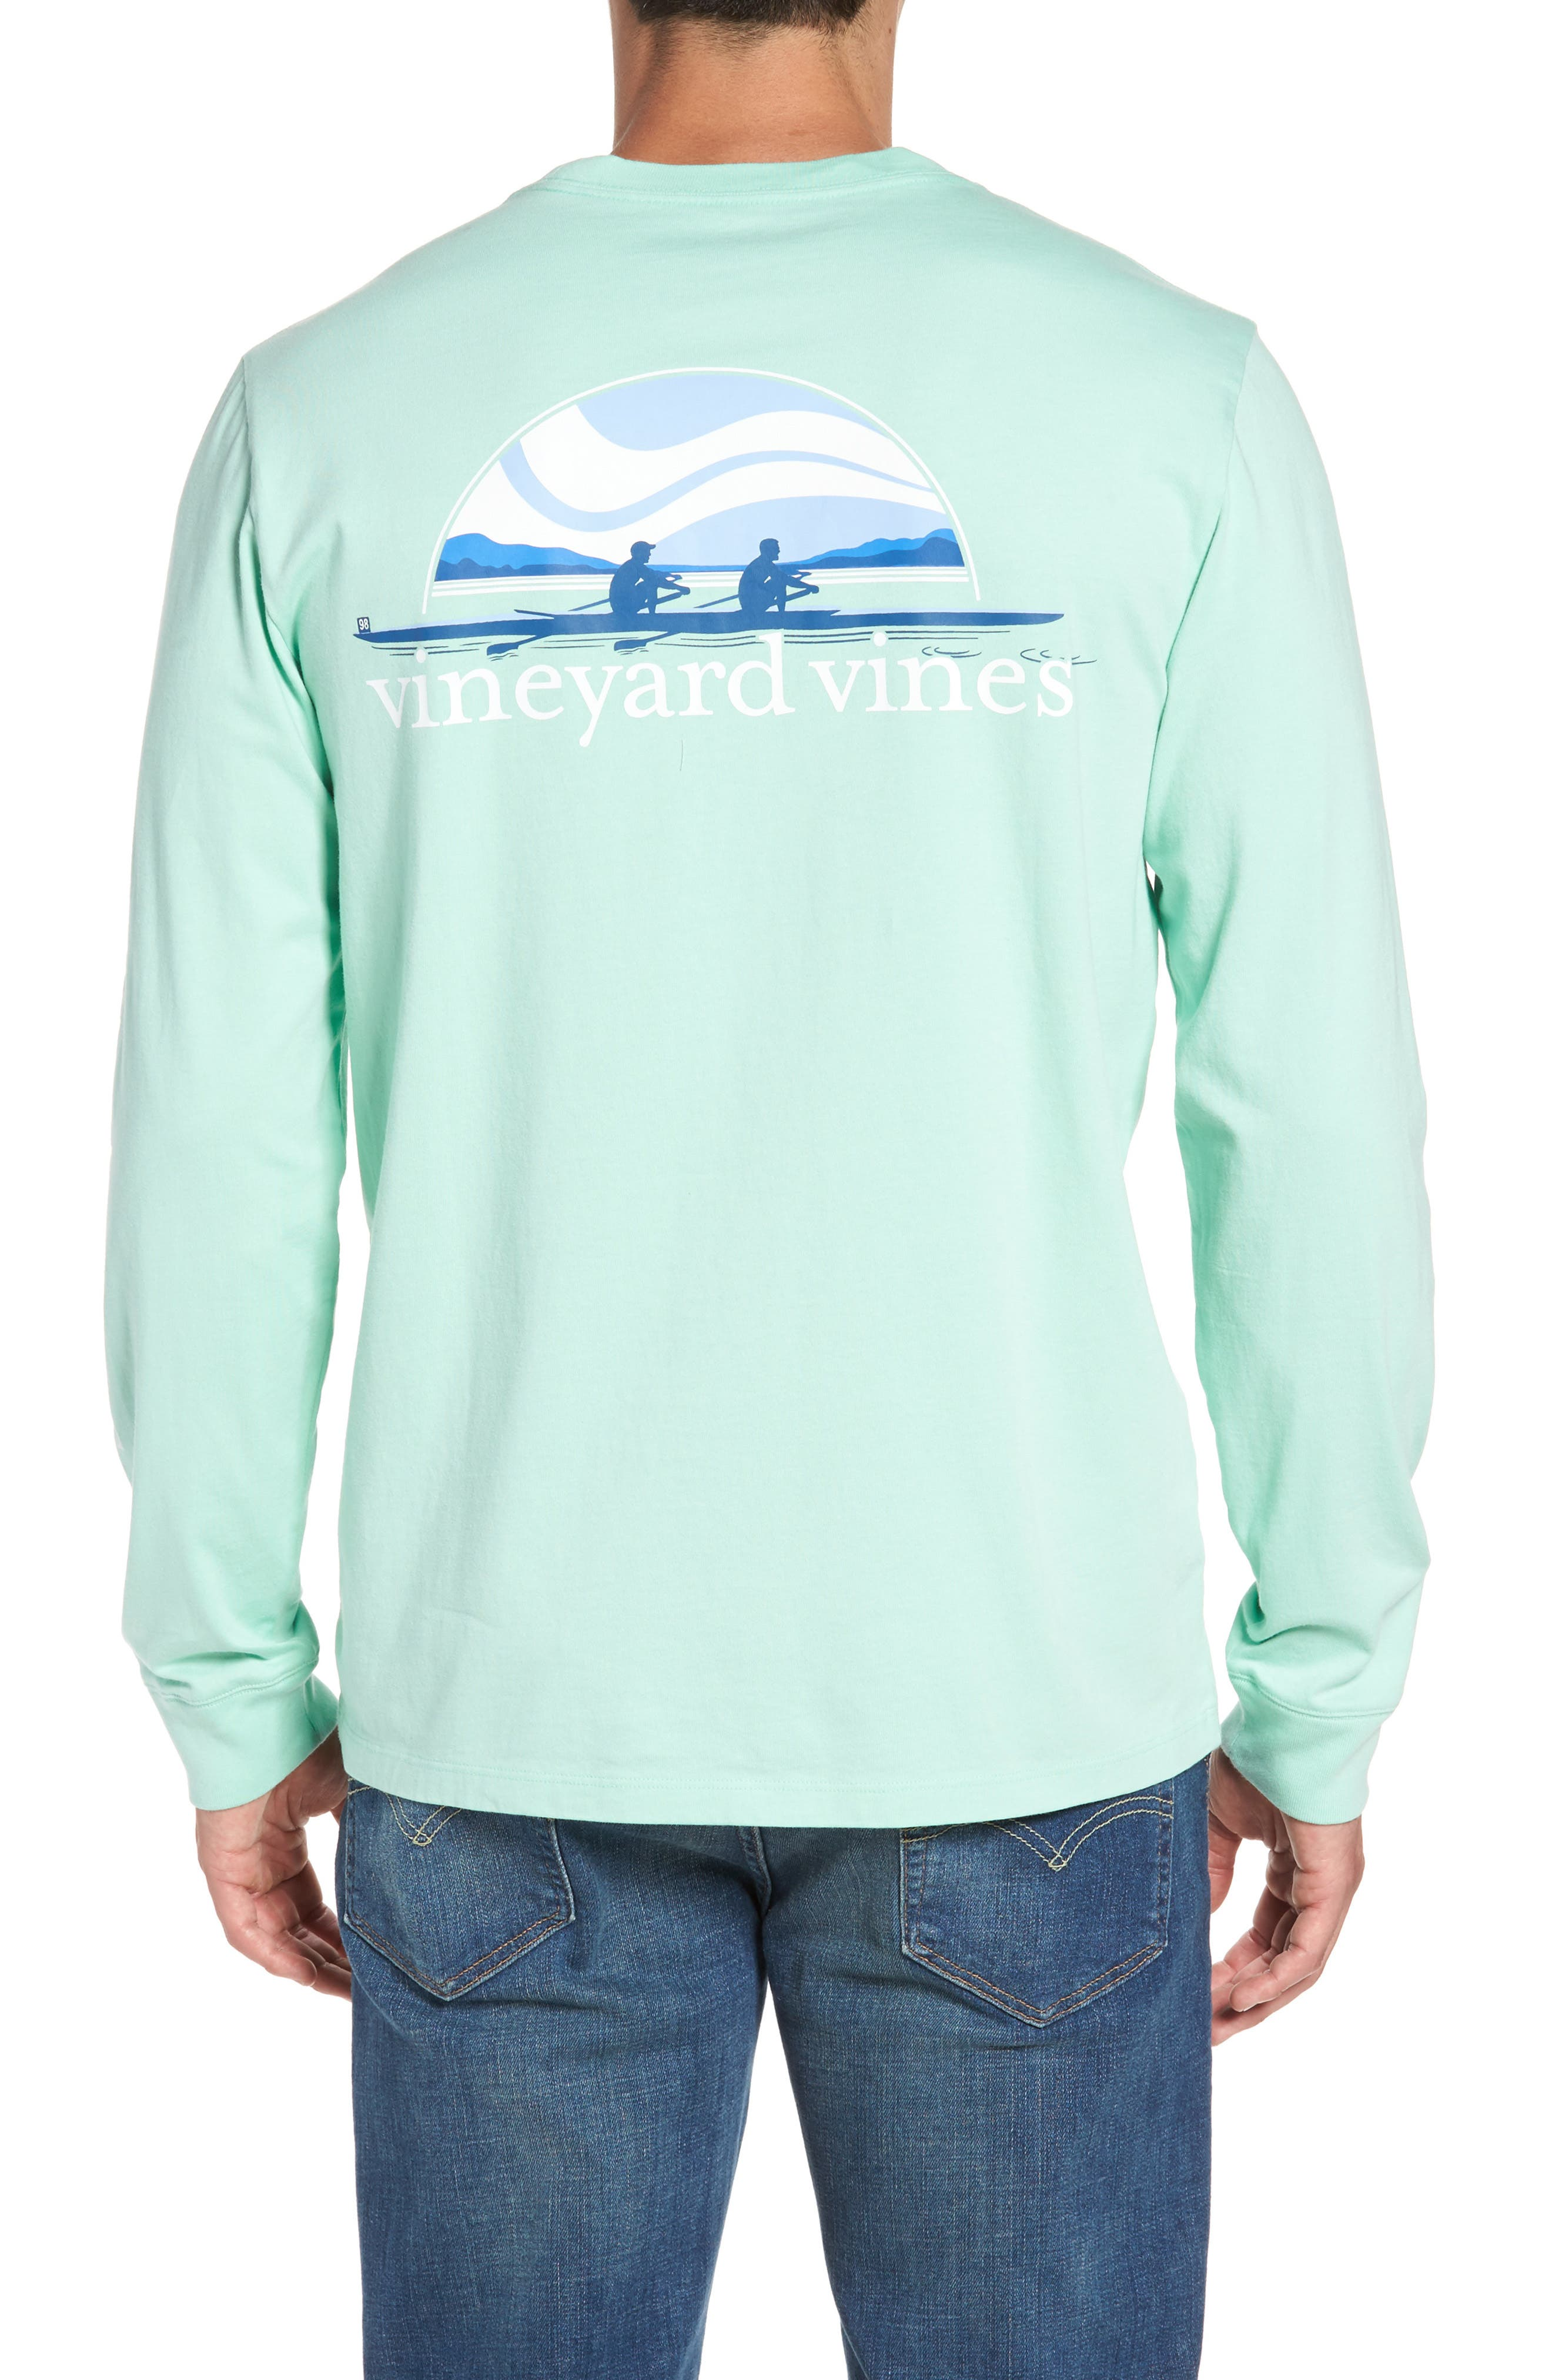 Main Image - Vineyard Vines Rowing Graphic T-Shirt